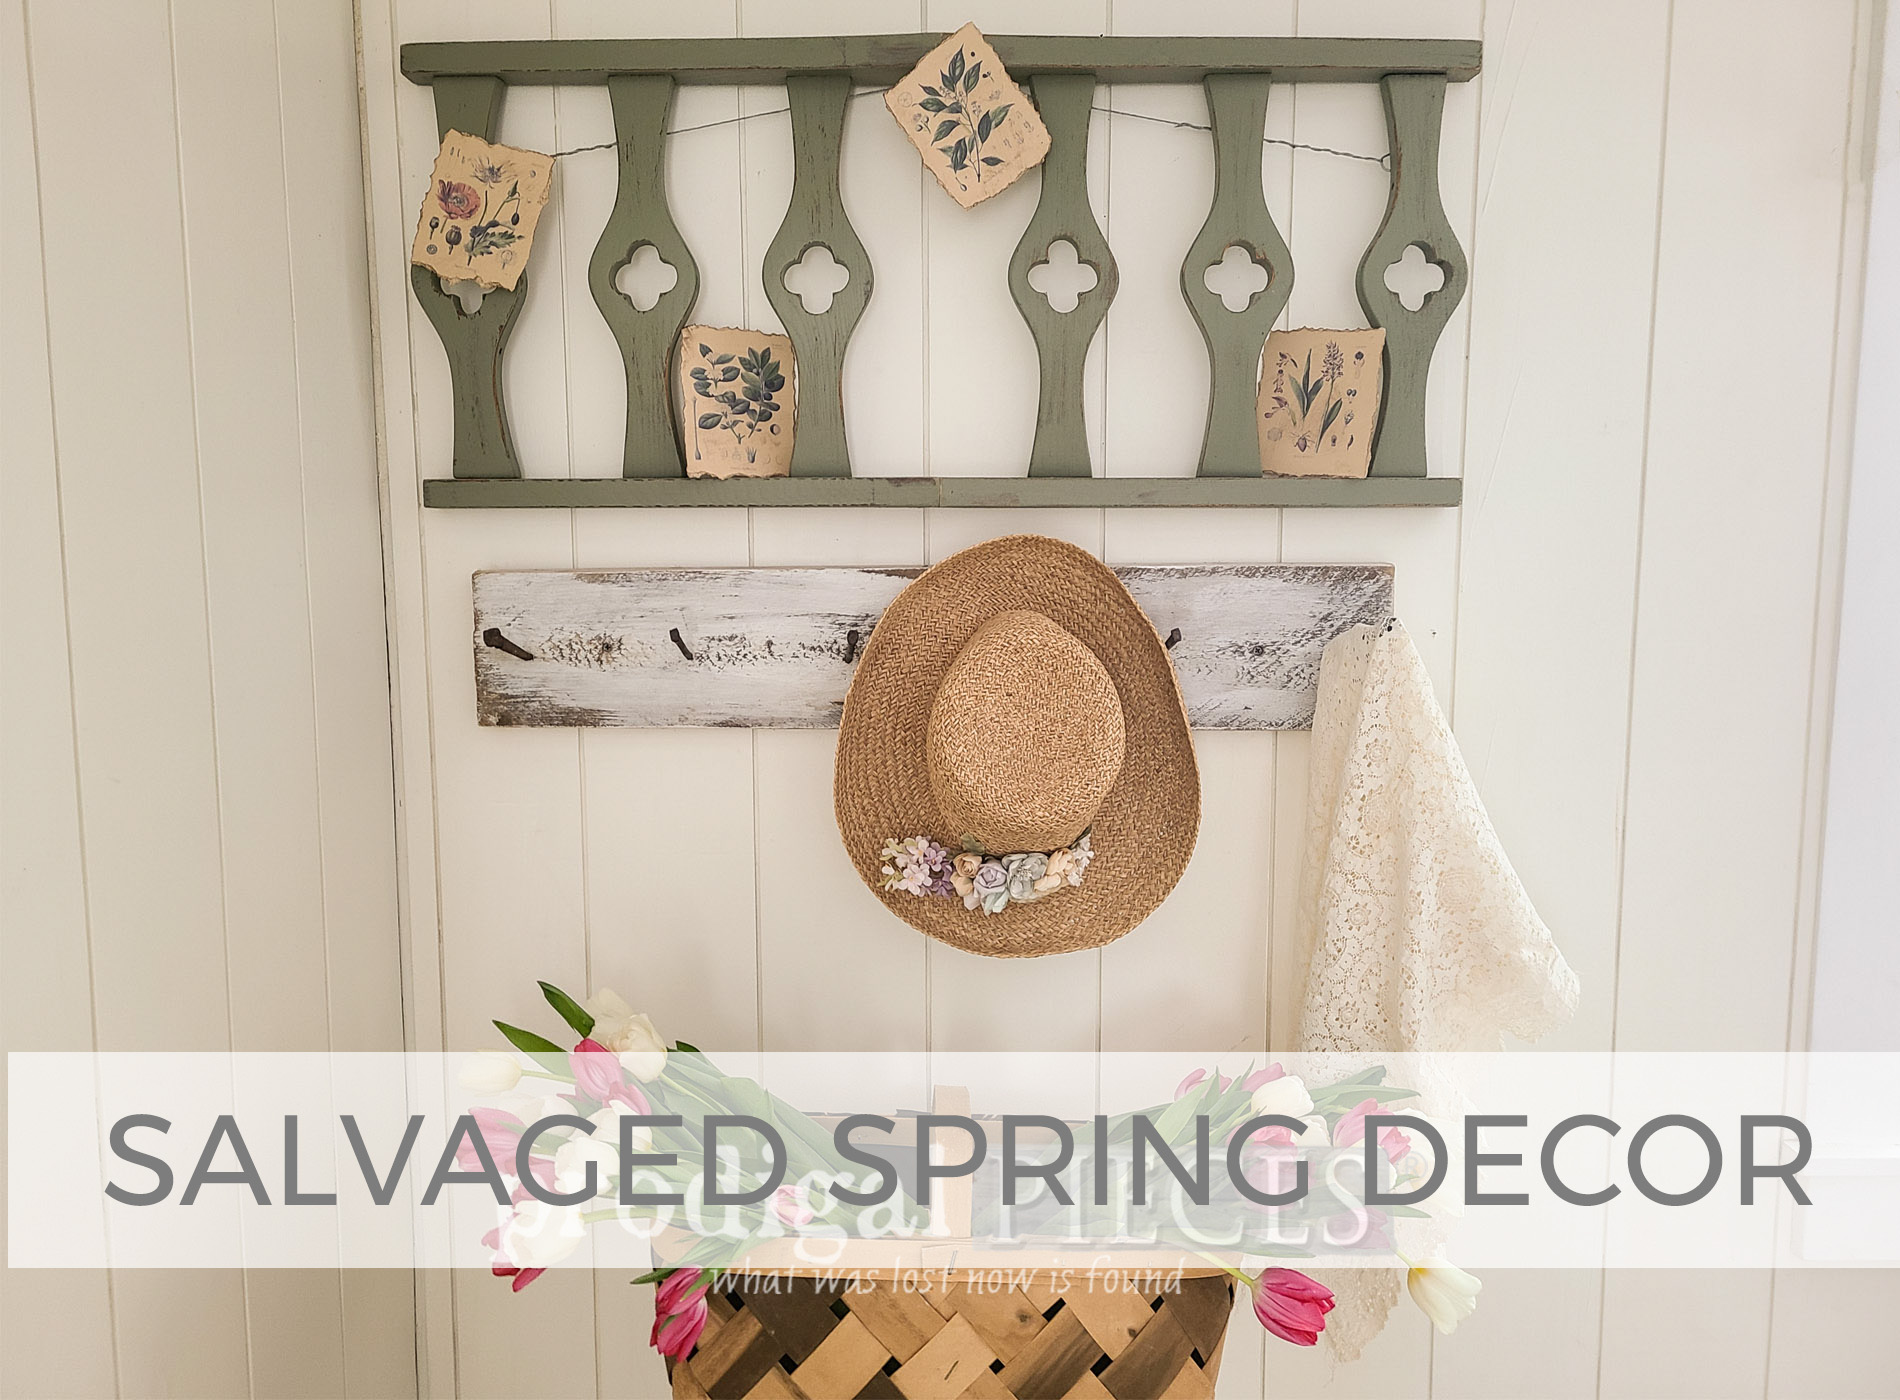 Salvaged Spring Decor from Broken Chairs by Larissa of Prodigal Pieces | prodigalpieces.com #prodigalpieces